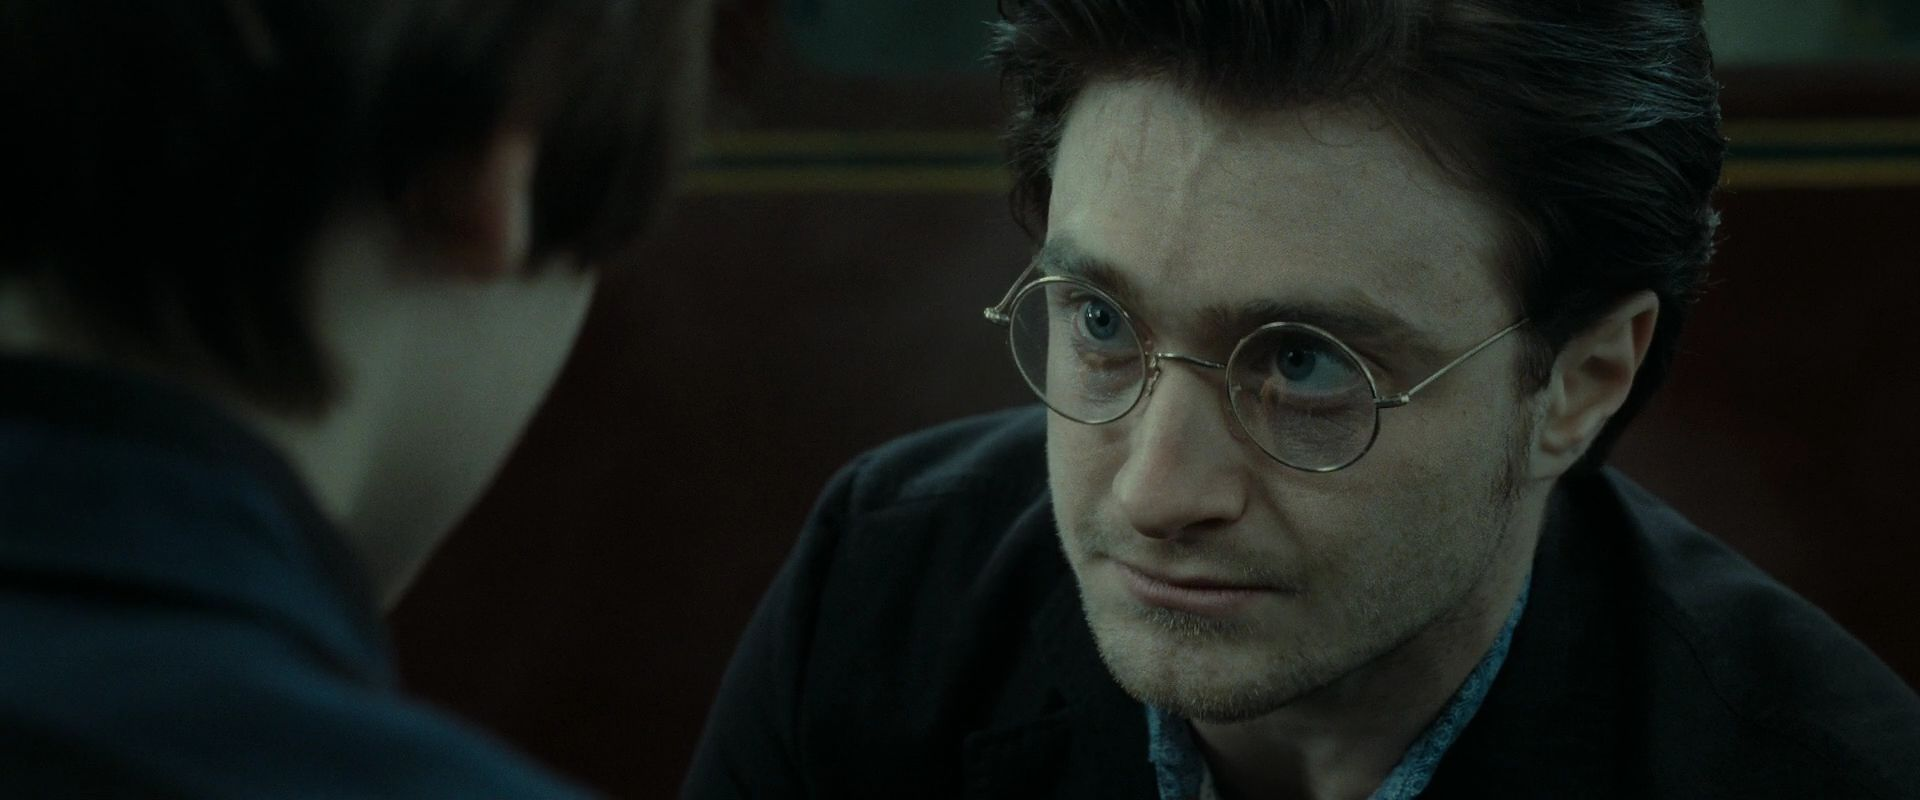 Harry Potter And The Deathly Hallows Wallpaper Hd Harry James Potter Images Hp Dh Part 2 Hd Wallpaper And